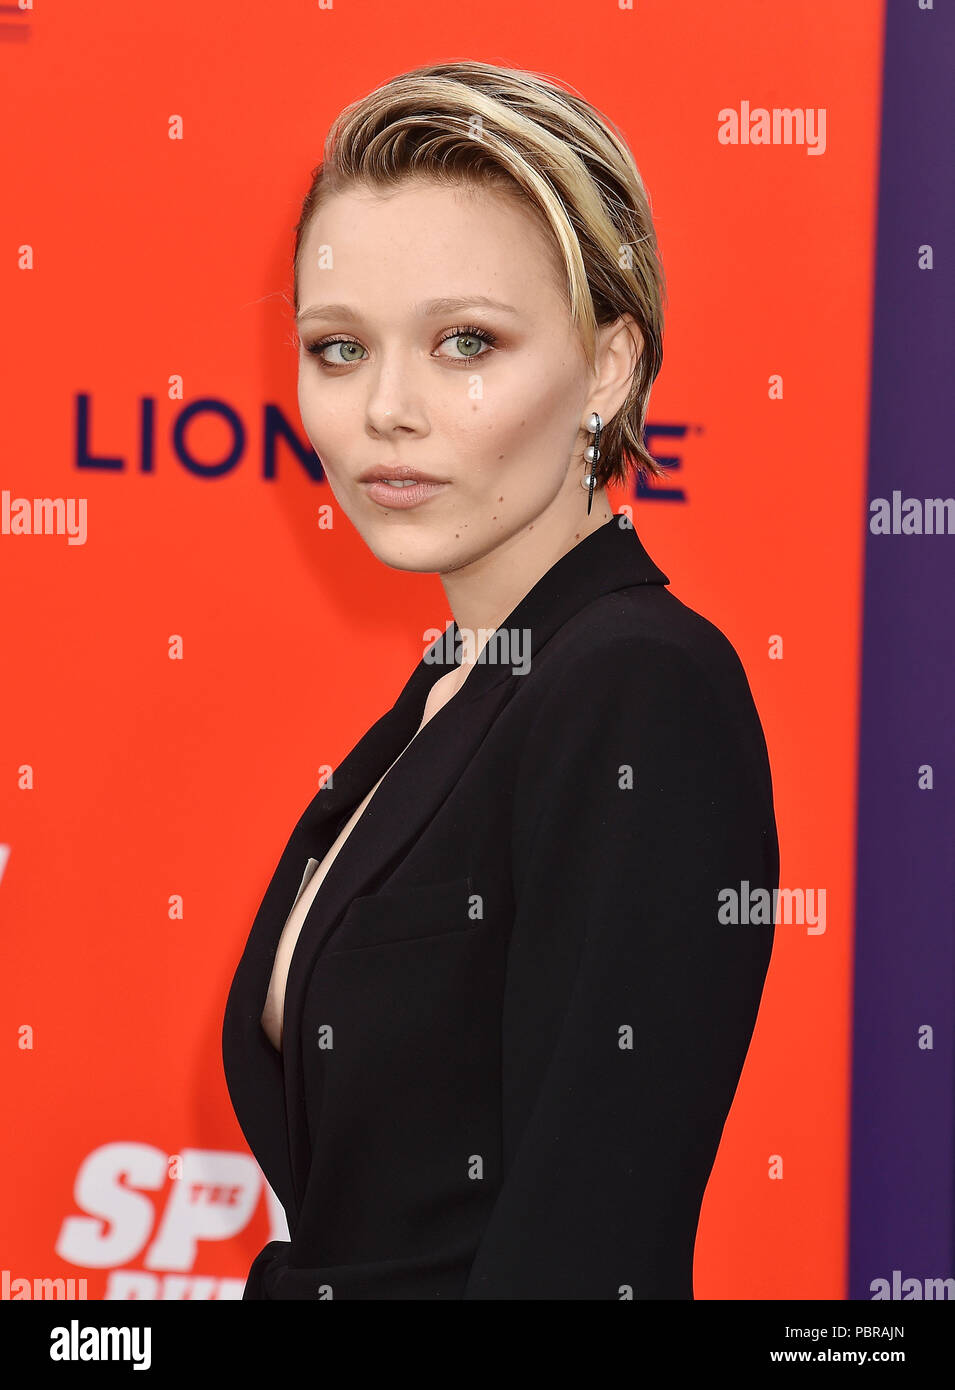 IVANA SAKHNO Ukrainian actress at the premiere of Lionsgate's 'The Spy Who Dumped Me' at Fox Village Theater on July 25, 2018 in Los Angeles, California. Photo: Jeffrey Mayer - Stock Image